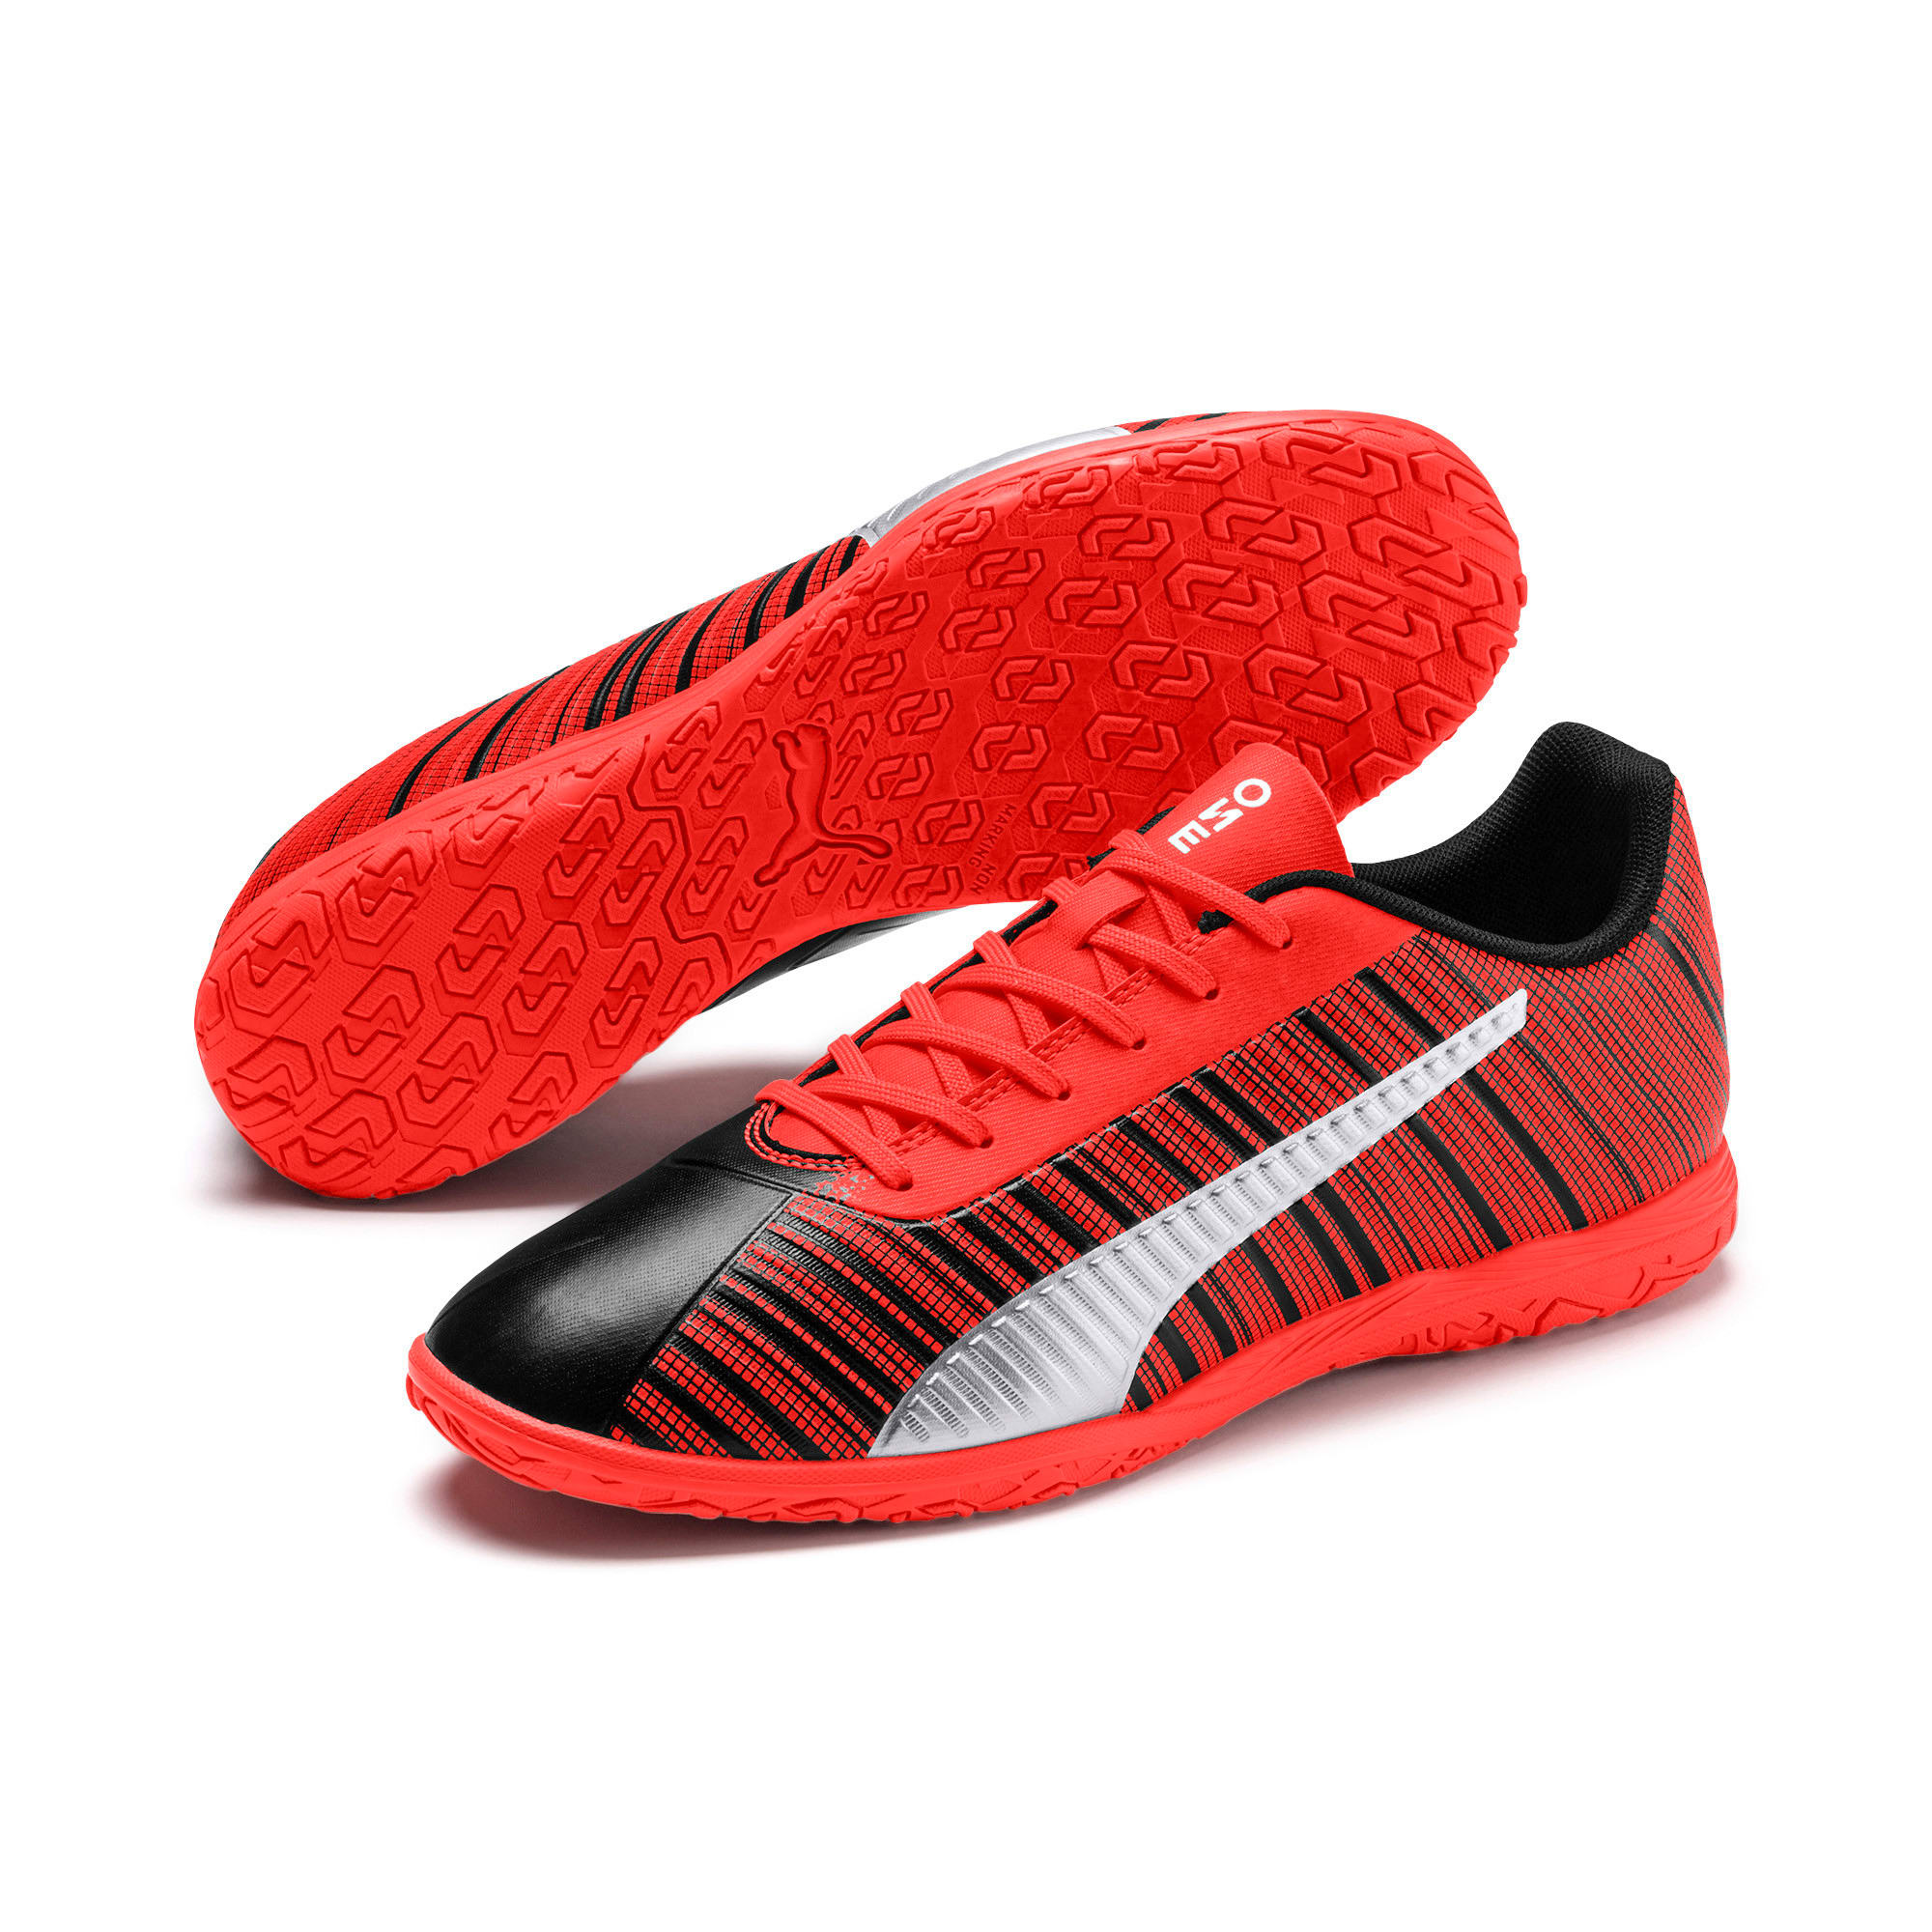 Thumbnail 3 of Chaussure de foot PUMA ONE 5.4 IT pour homme, Black-Nrgy Red-Aged Silver, medium